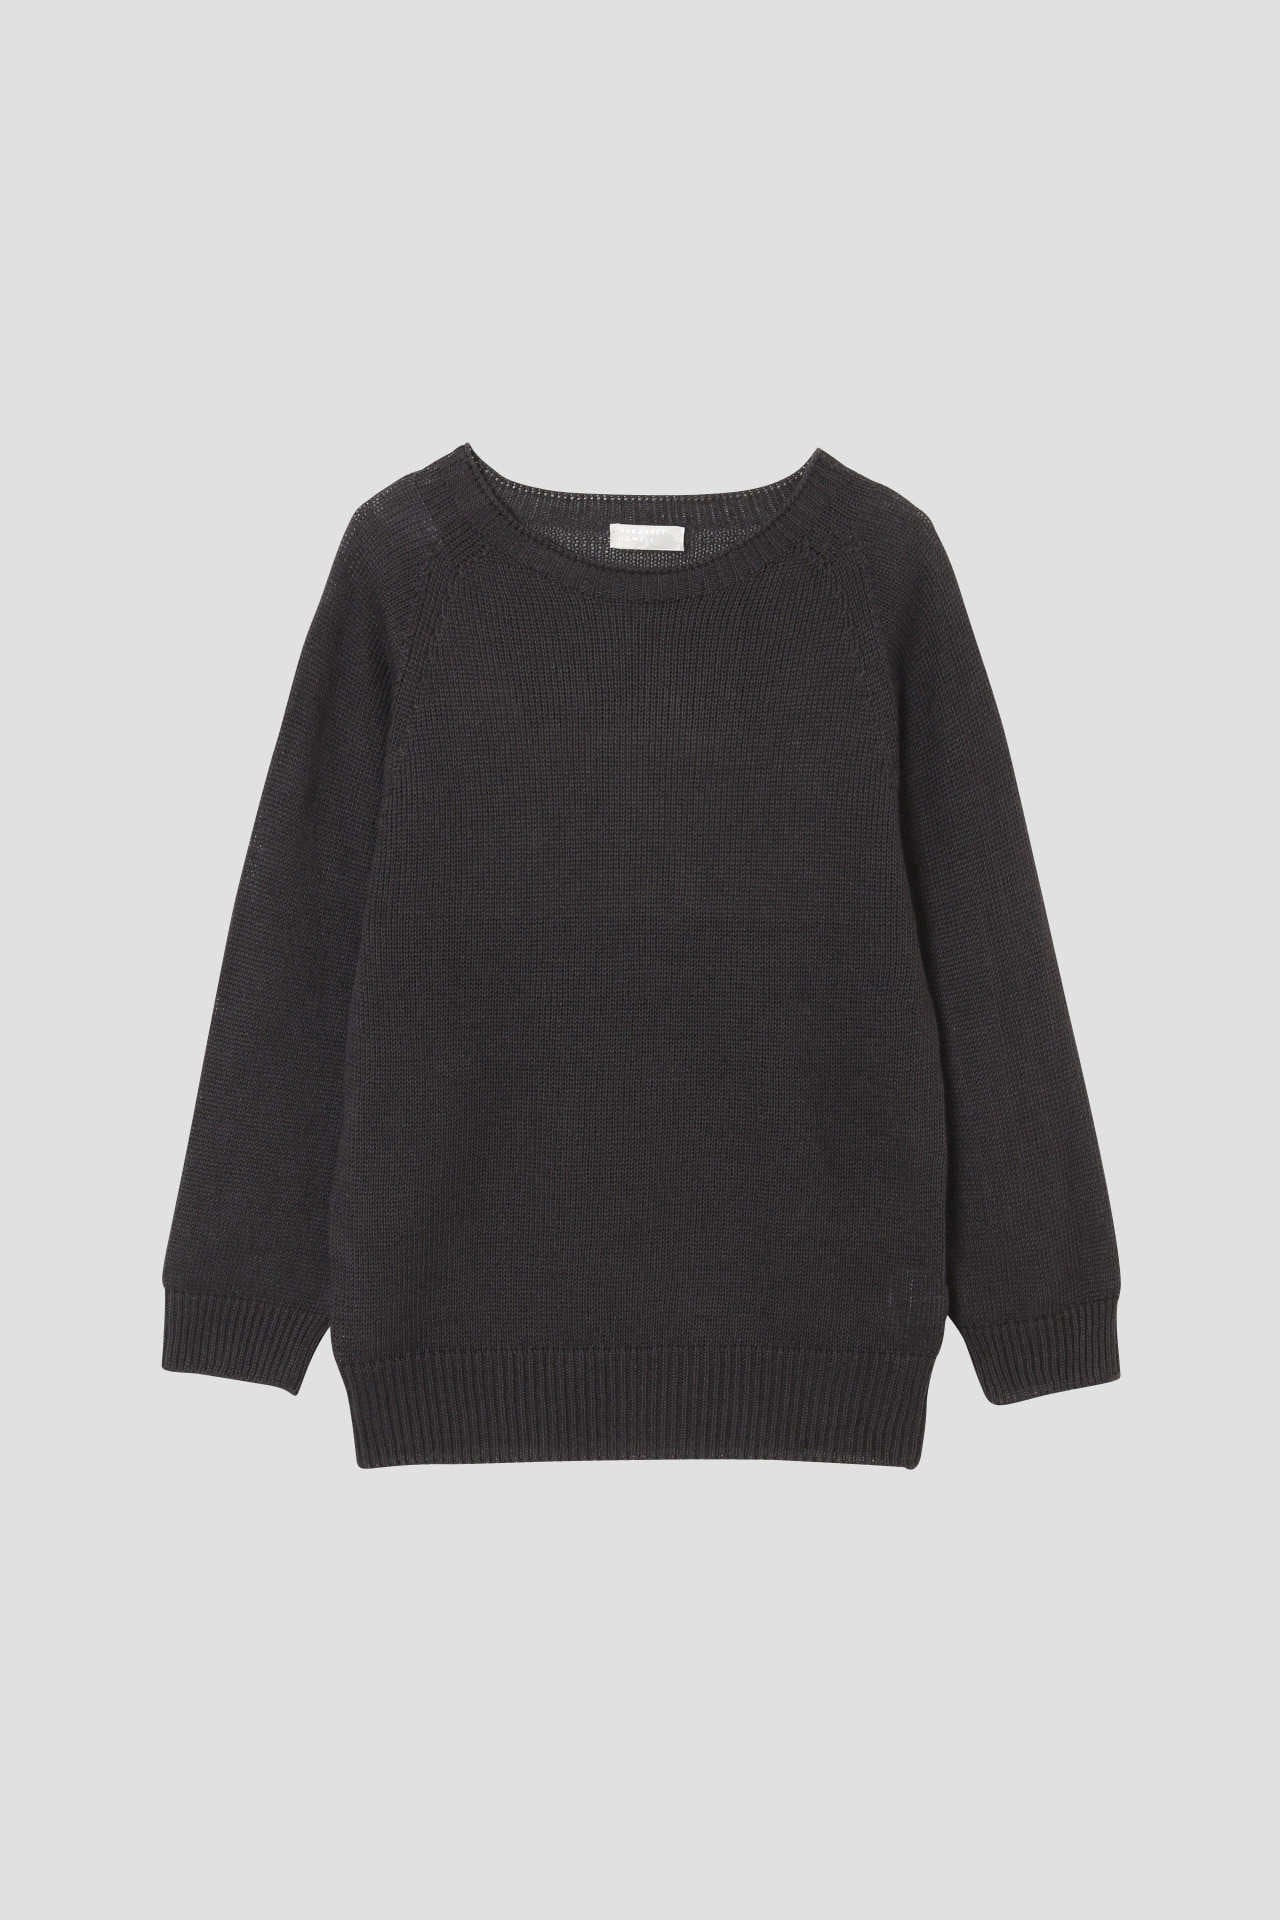 LINEN COTTON CREW NECK1